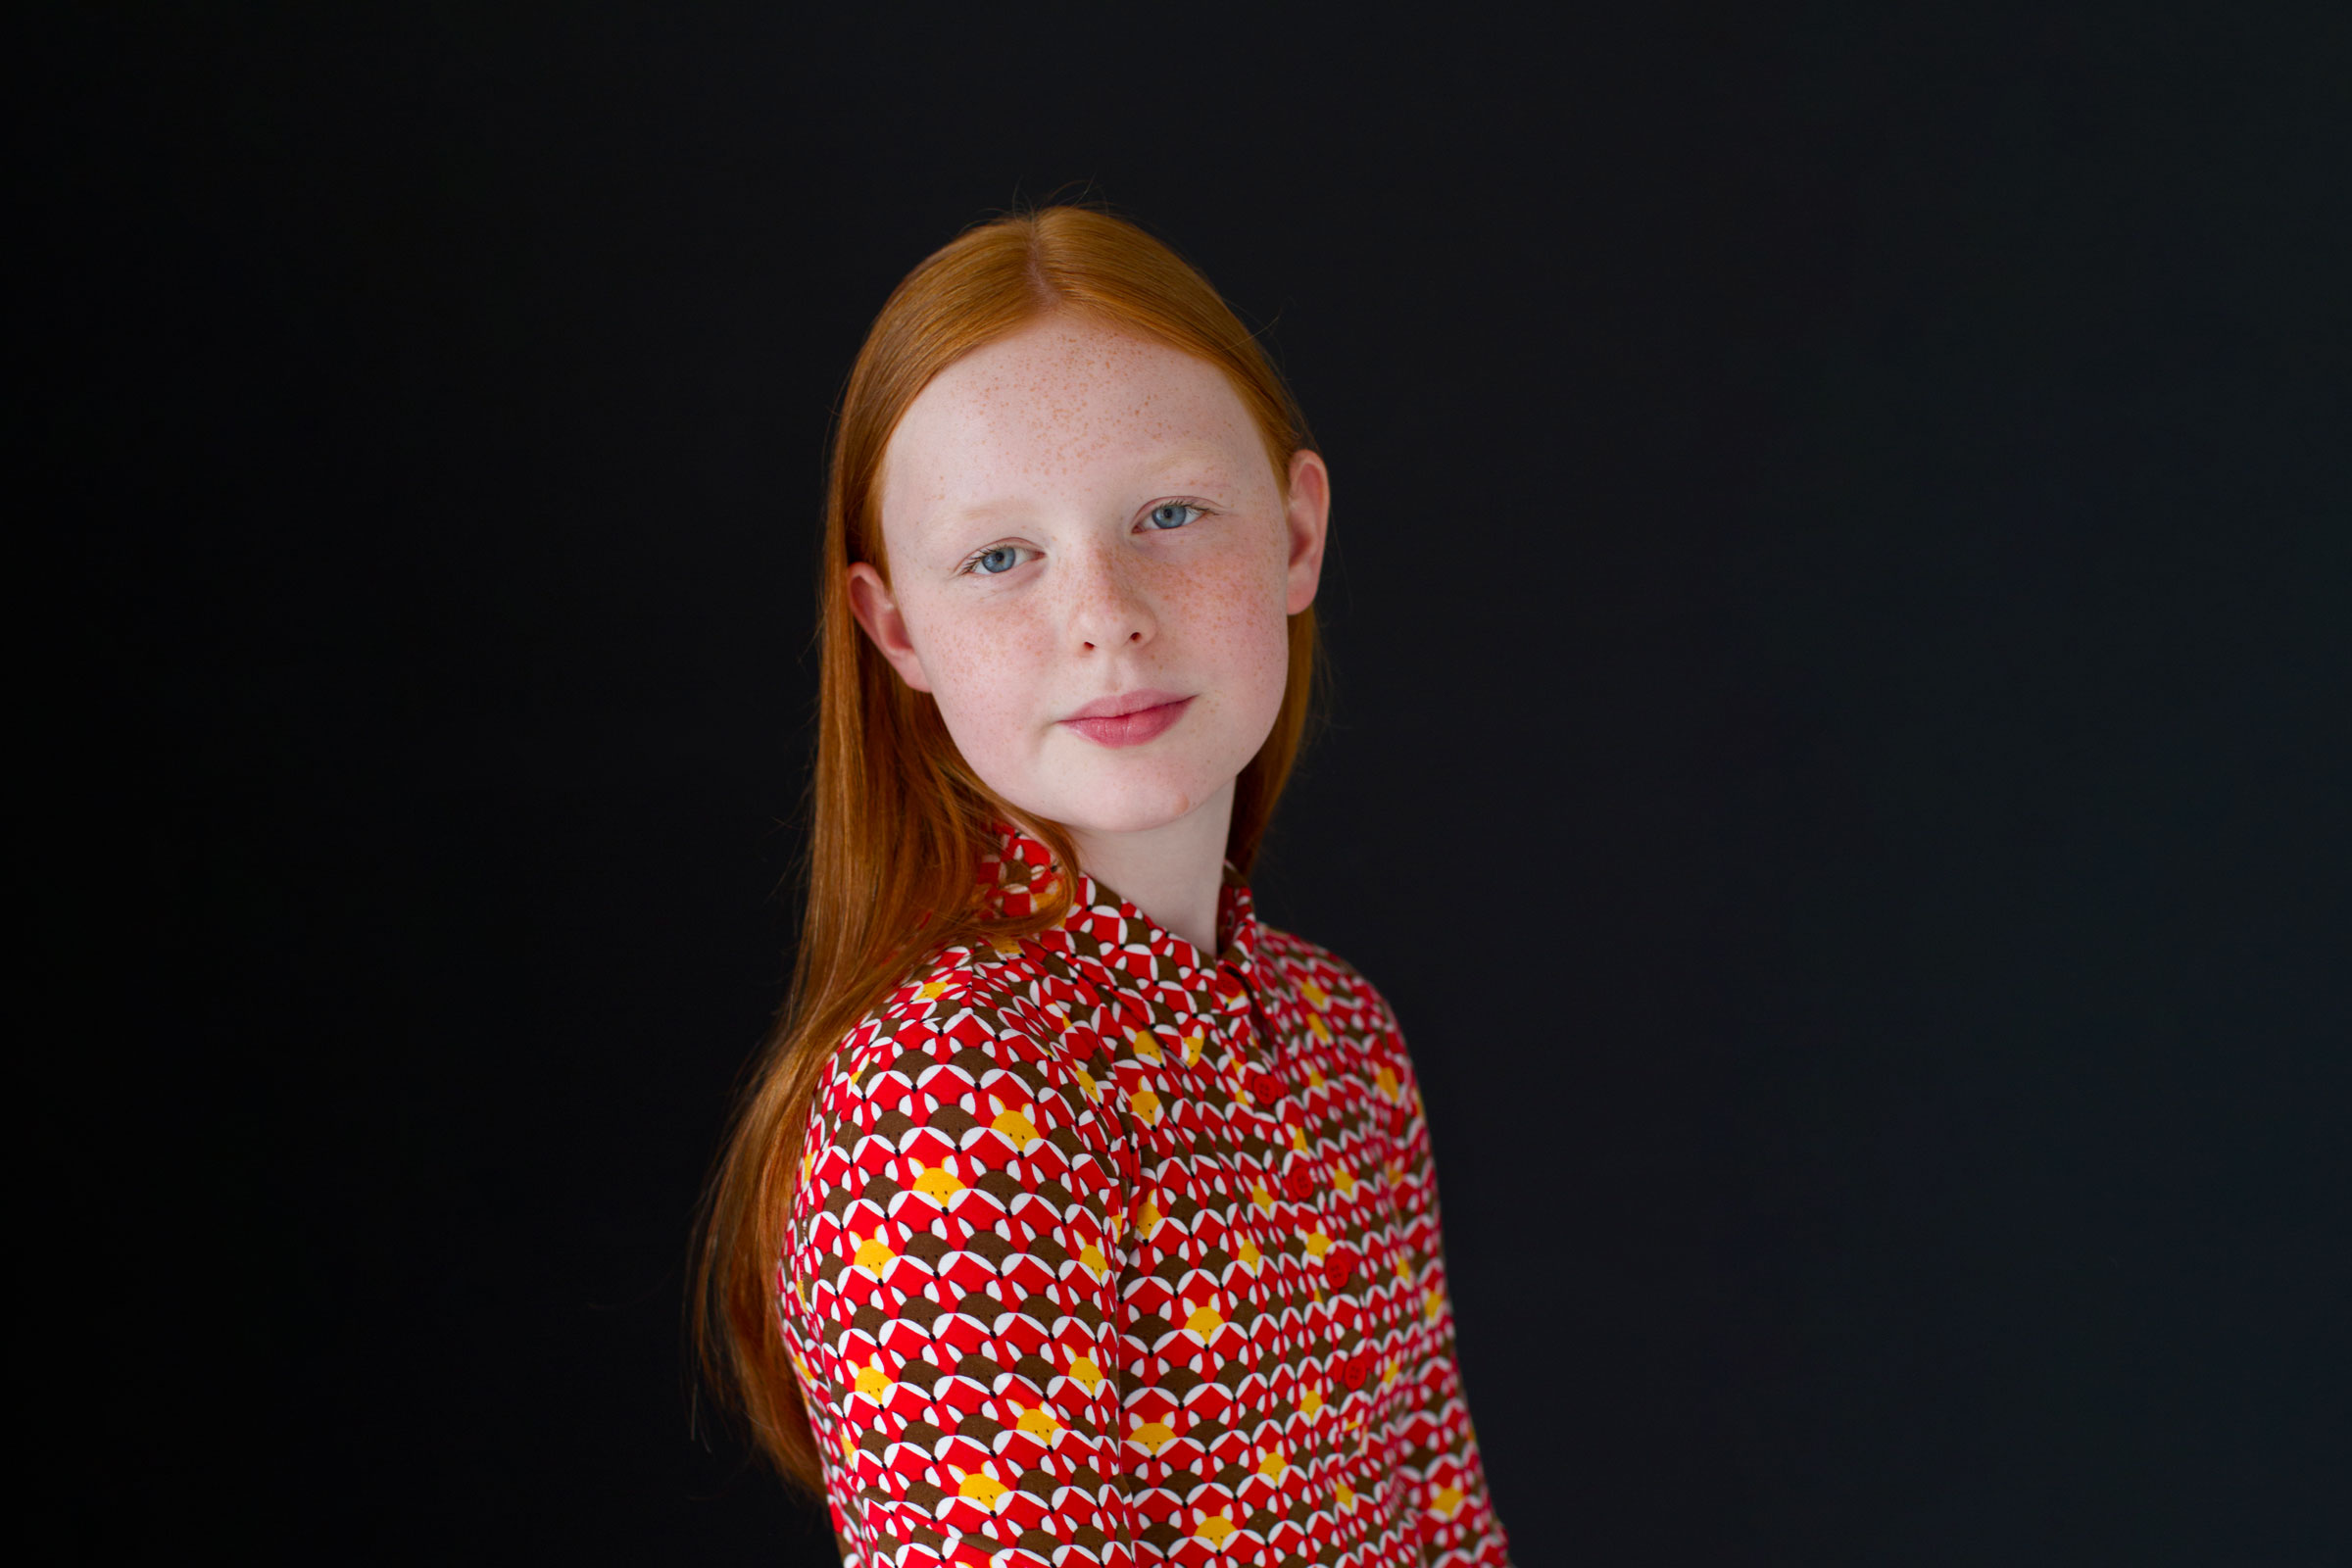 Contemporary-portrait-girl-with-red-hair